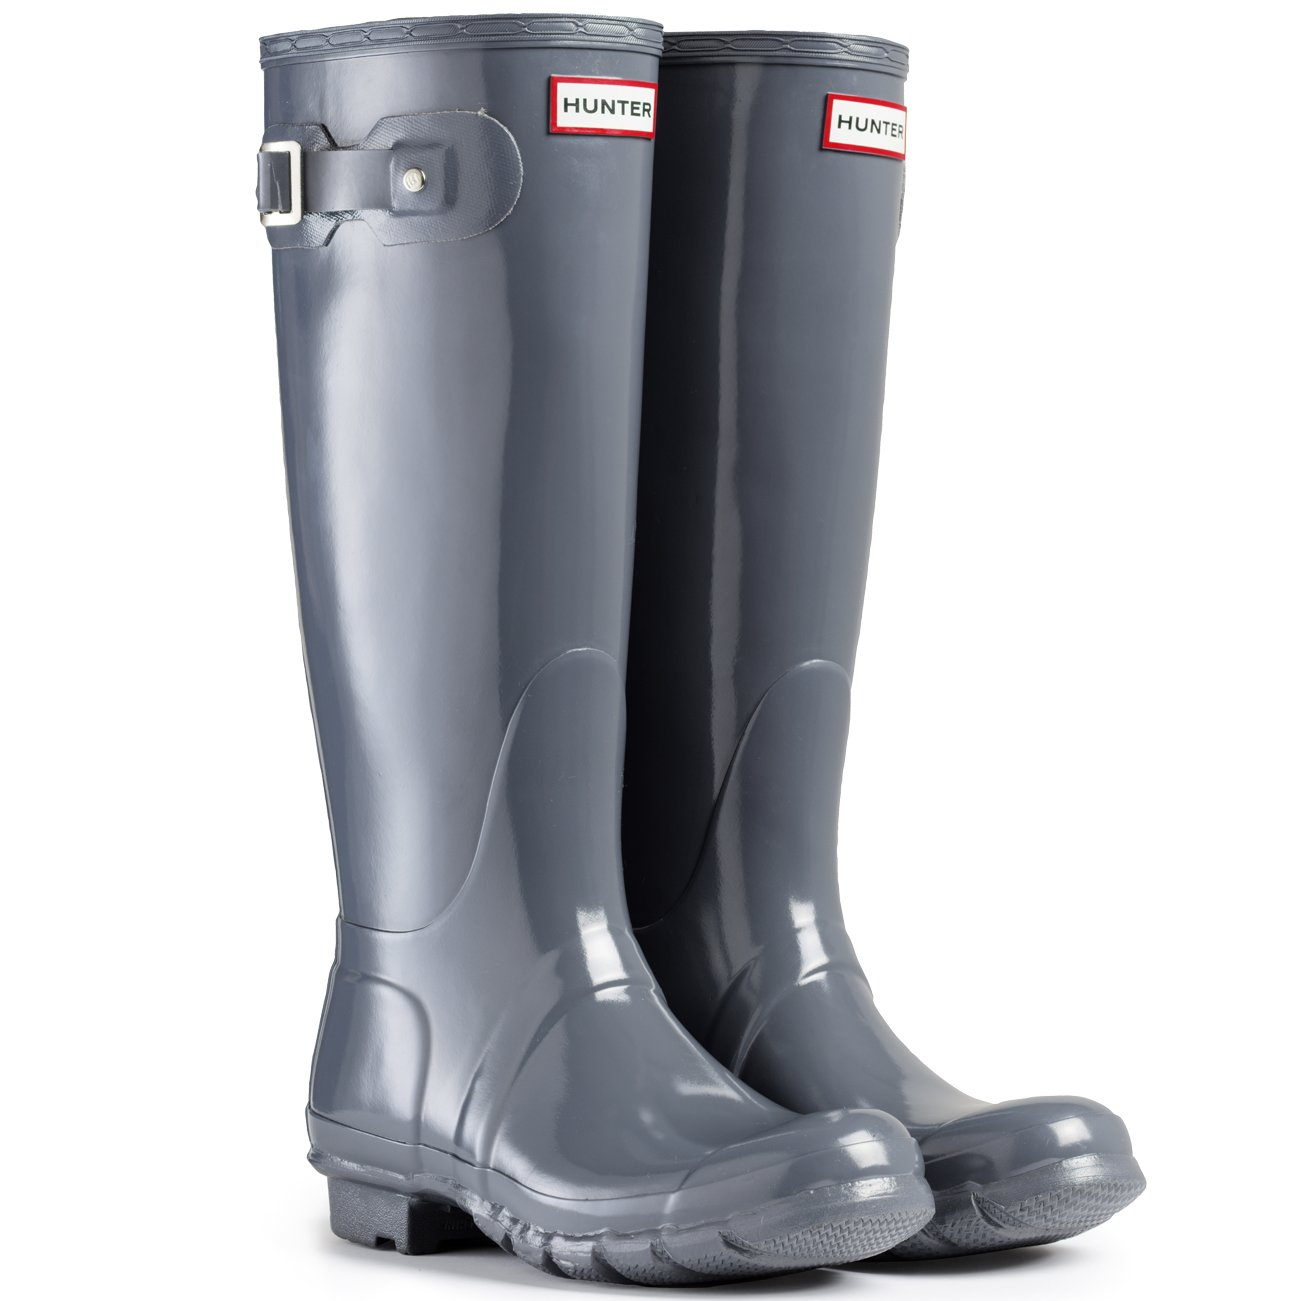 Womens Hunter Original Tall Gloss Waterproof Wellington Winter Rain Boot B00IHW399M 7 M US|Graphite